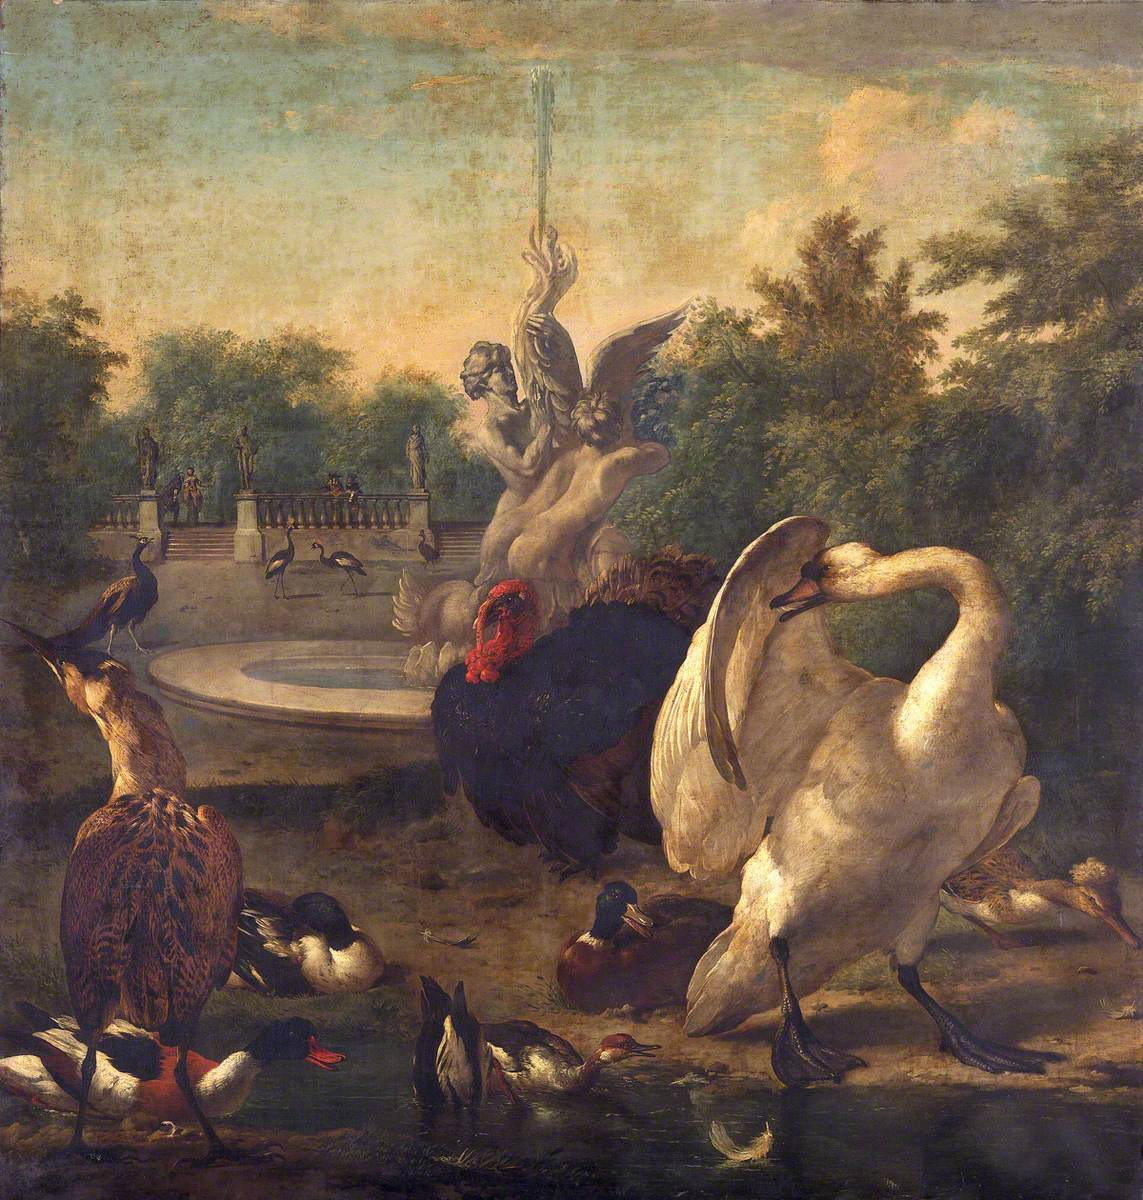 A Park with a Swan and Other Birds